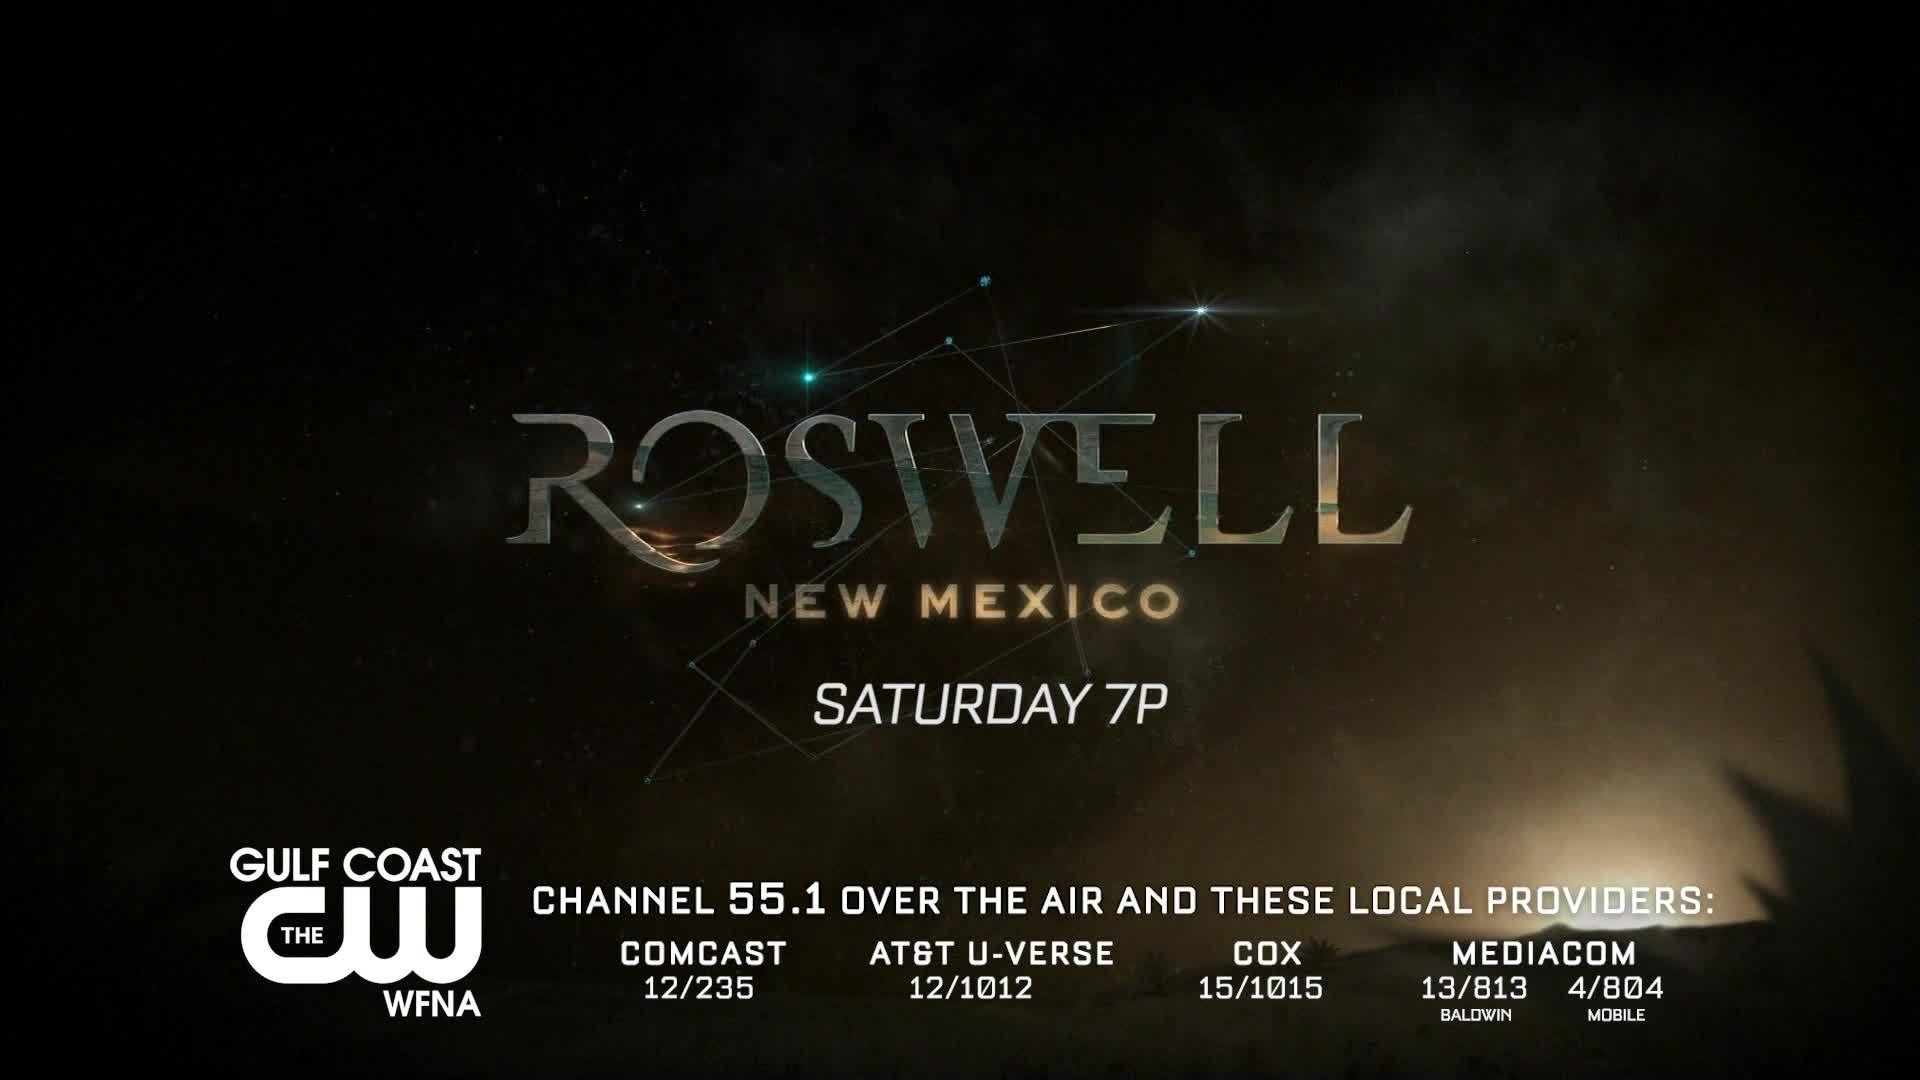 Catch encore episodes of the first two episodes of Roswell, New Mexico this Saturday at 7PM on The GCCW!